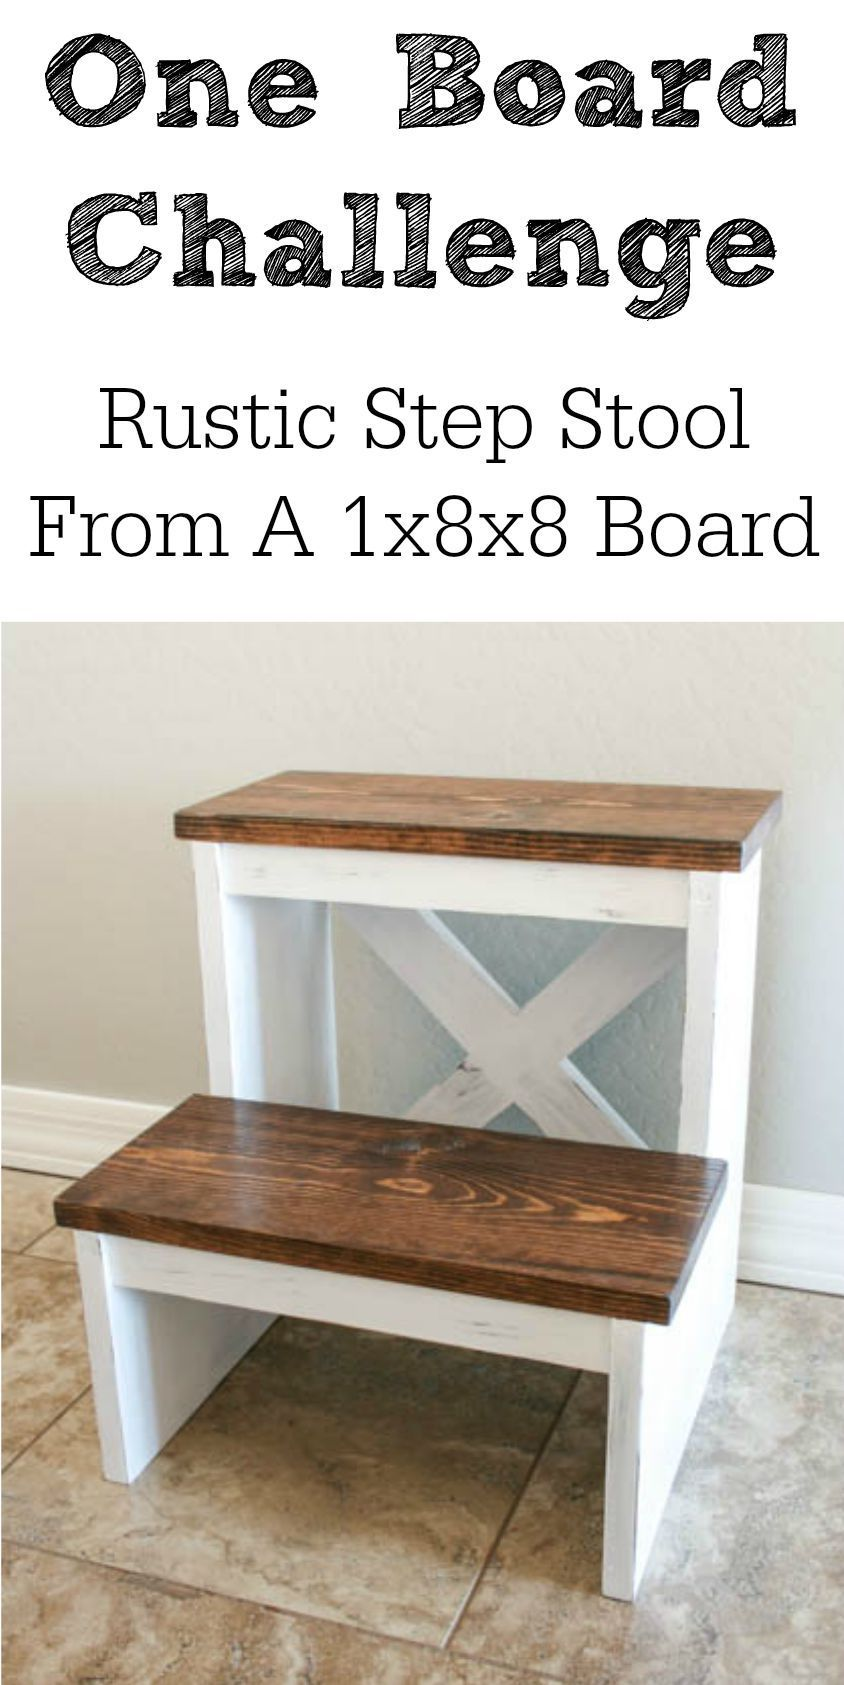 Beautiful Indoor & Outdoor Furniture & Crafting Plans – The DIY Blog ...